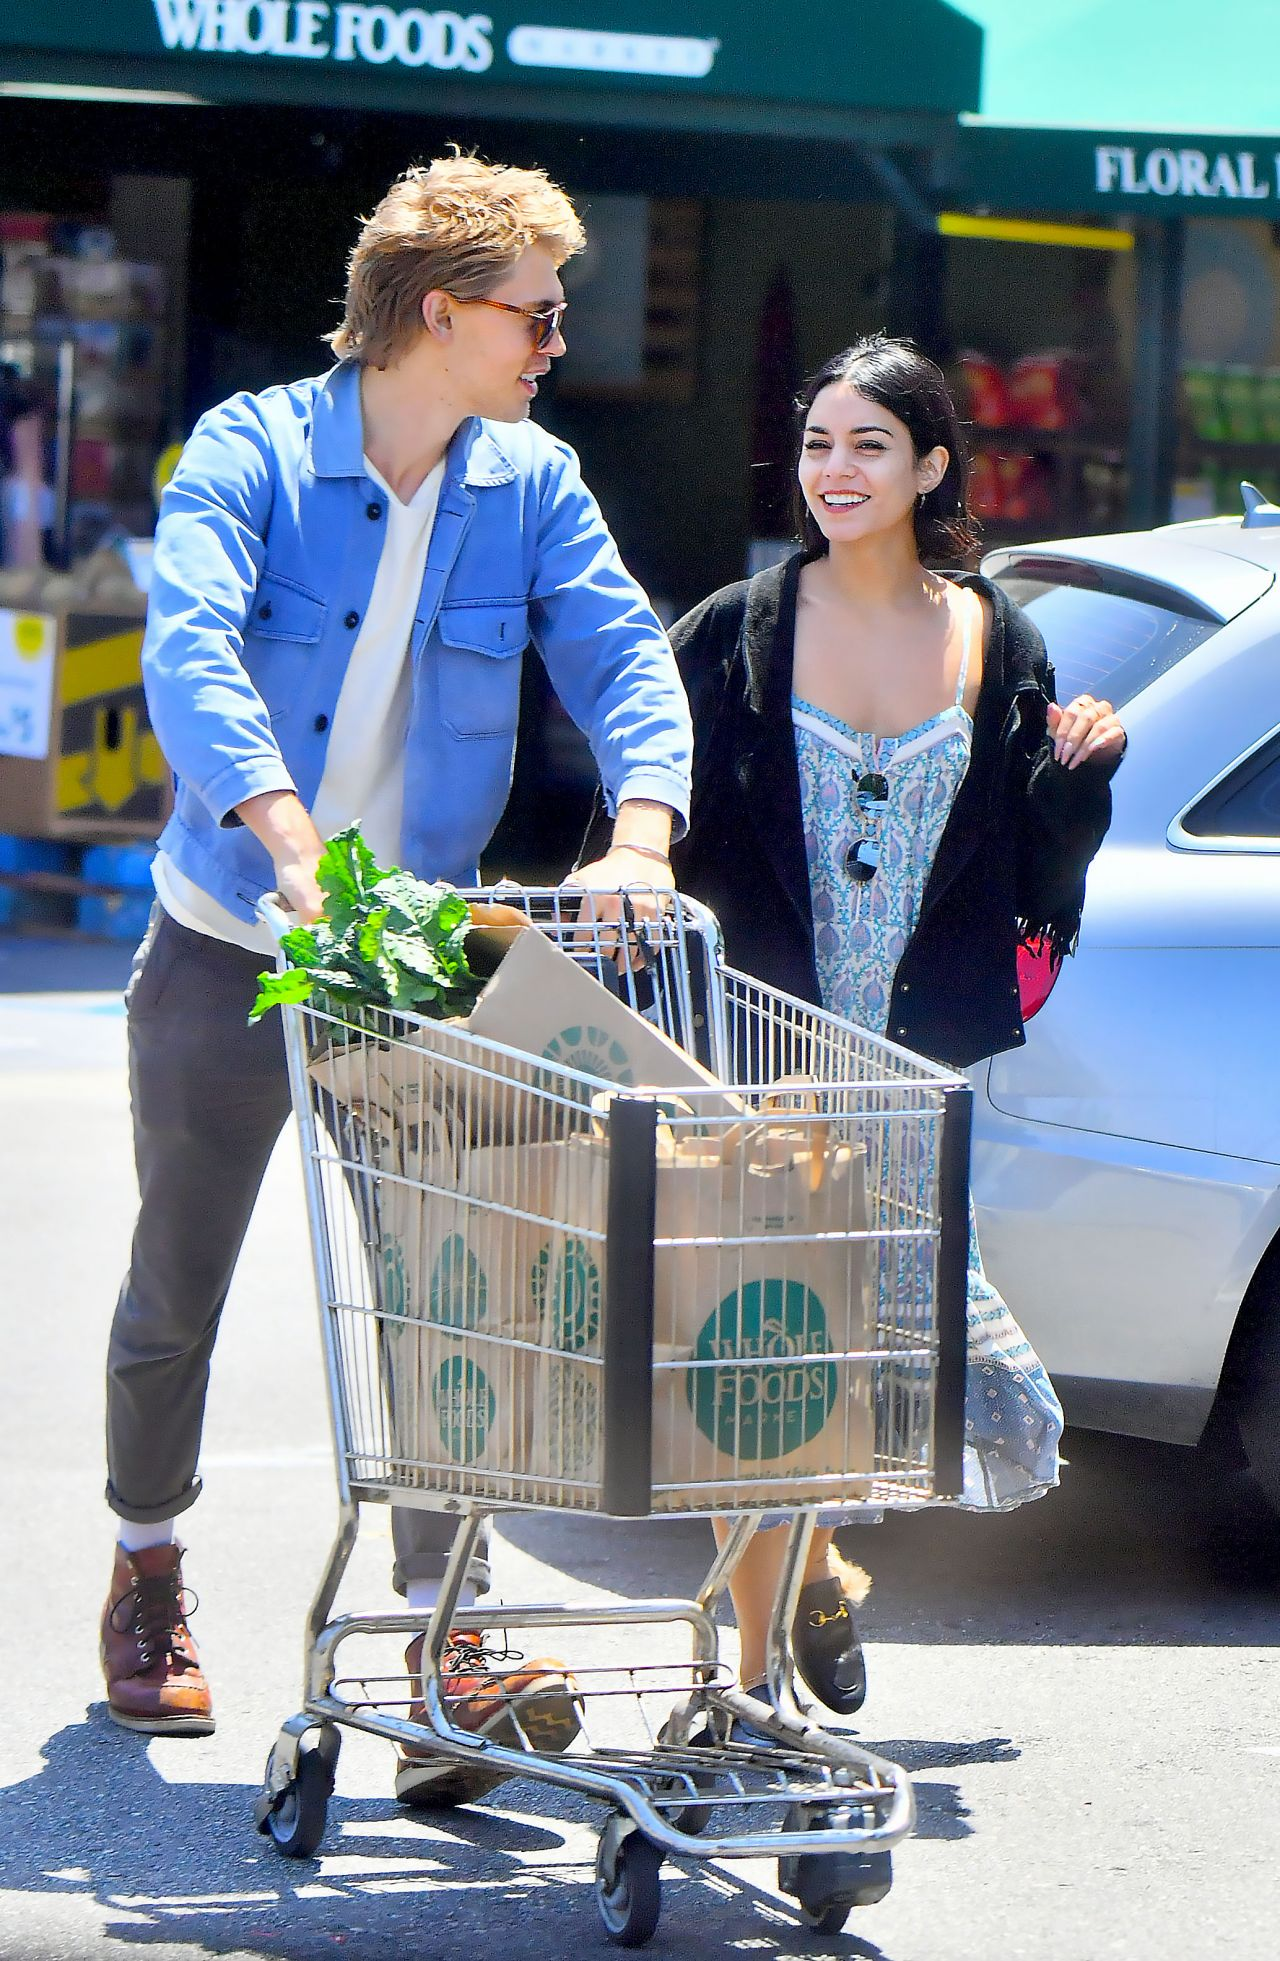 Vanessa Hudgens With Austin Butler at Whole Foods in LA 05/31/2017